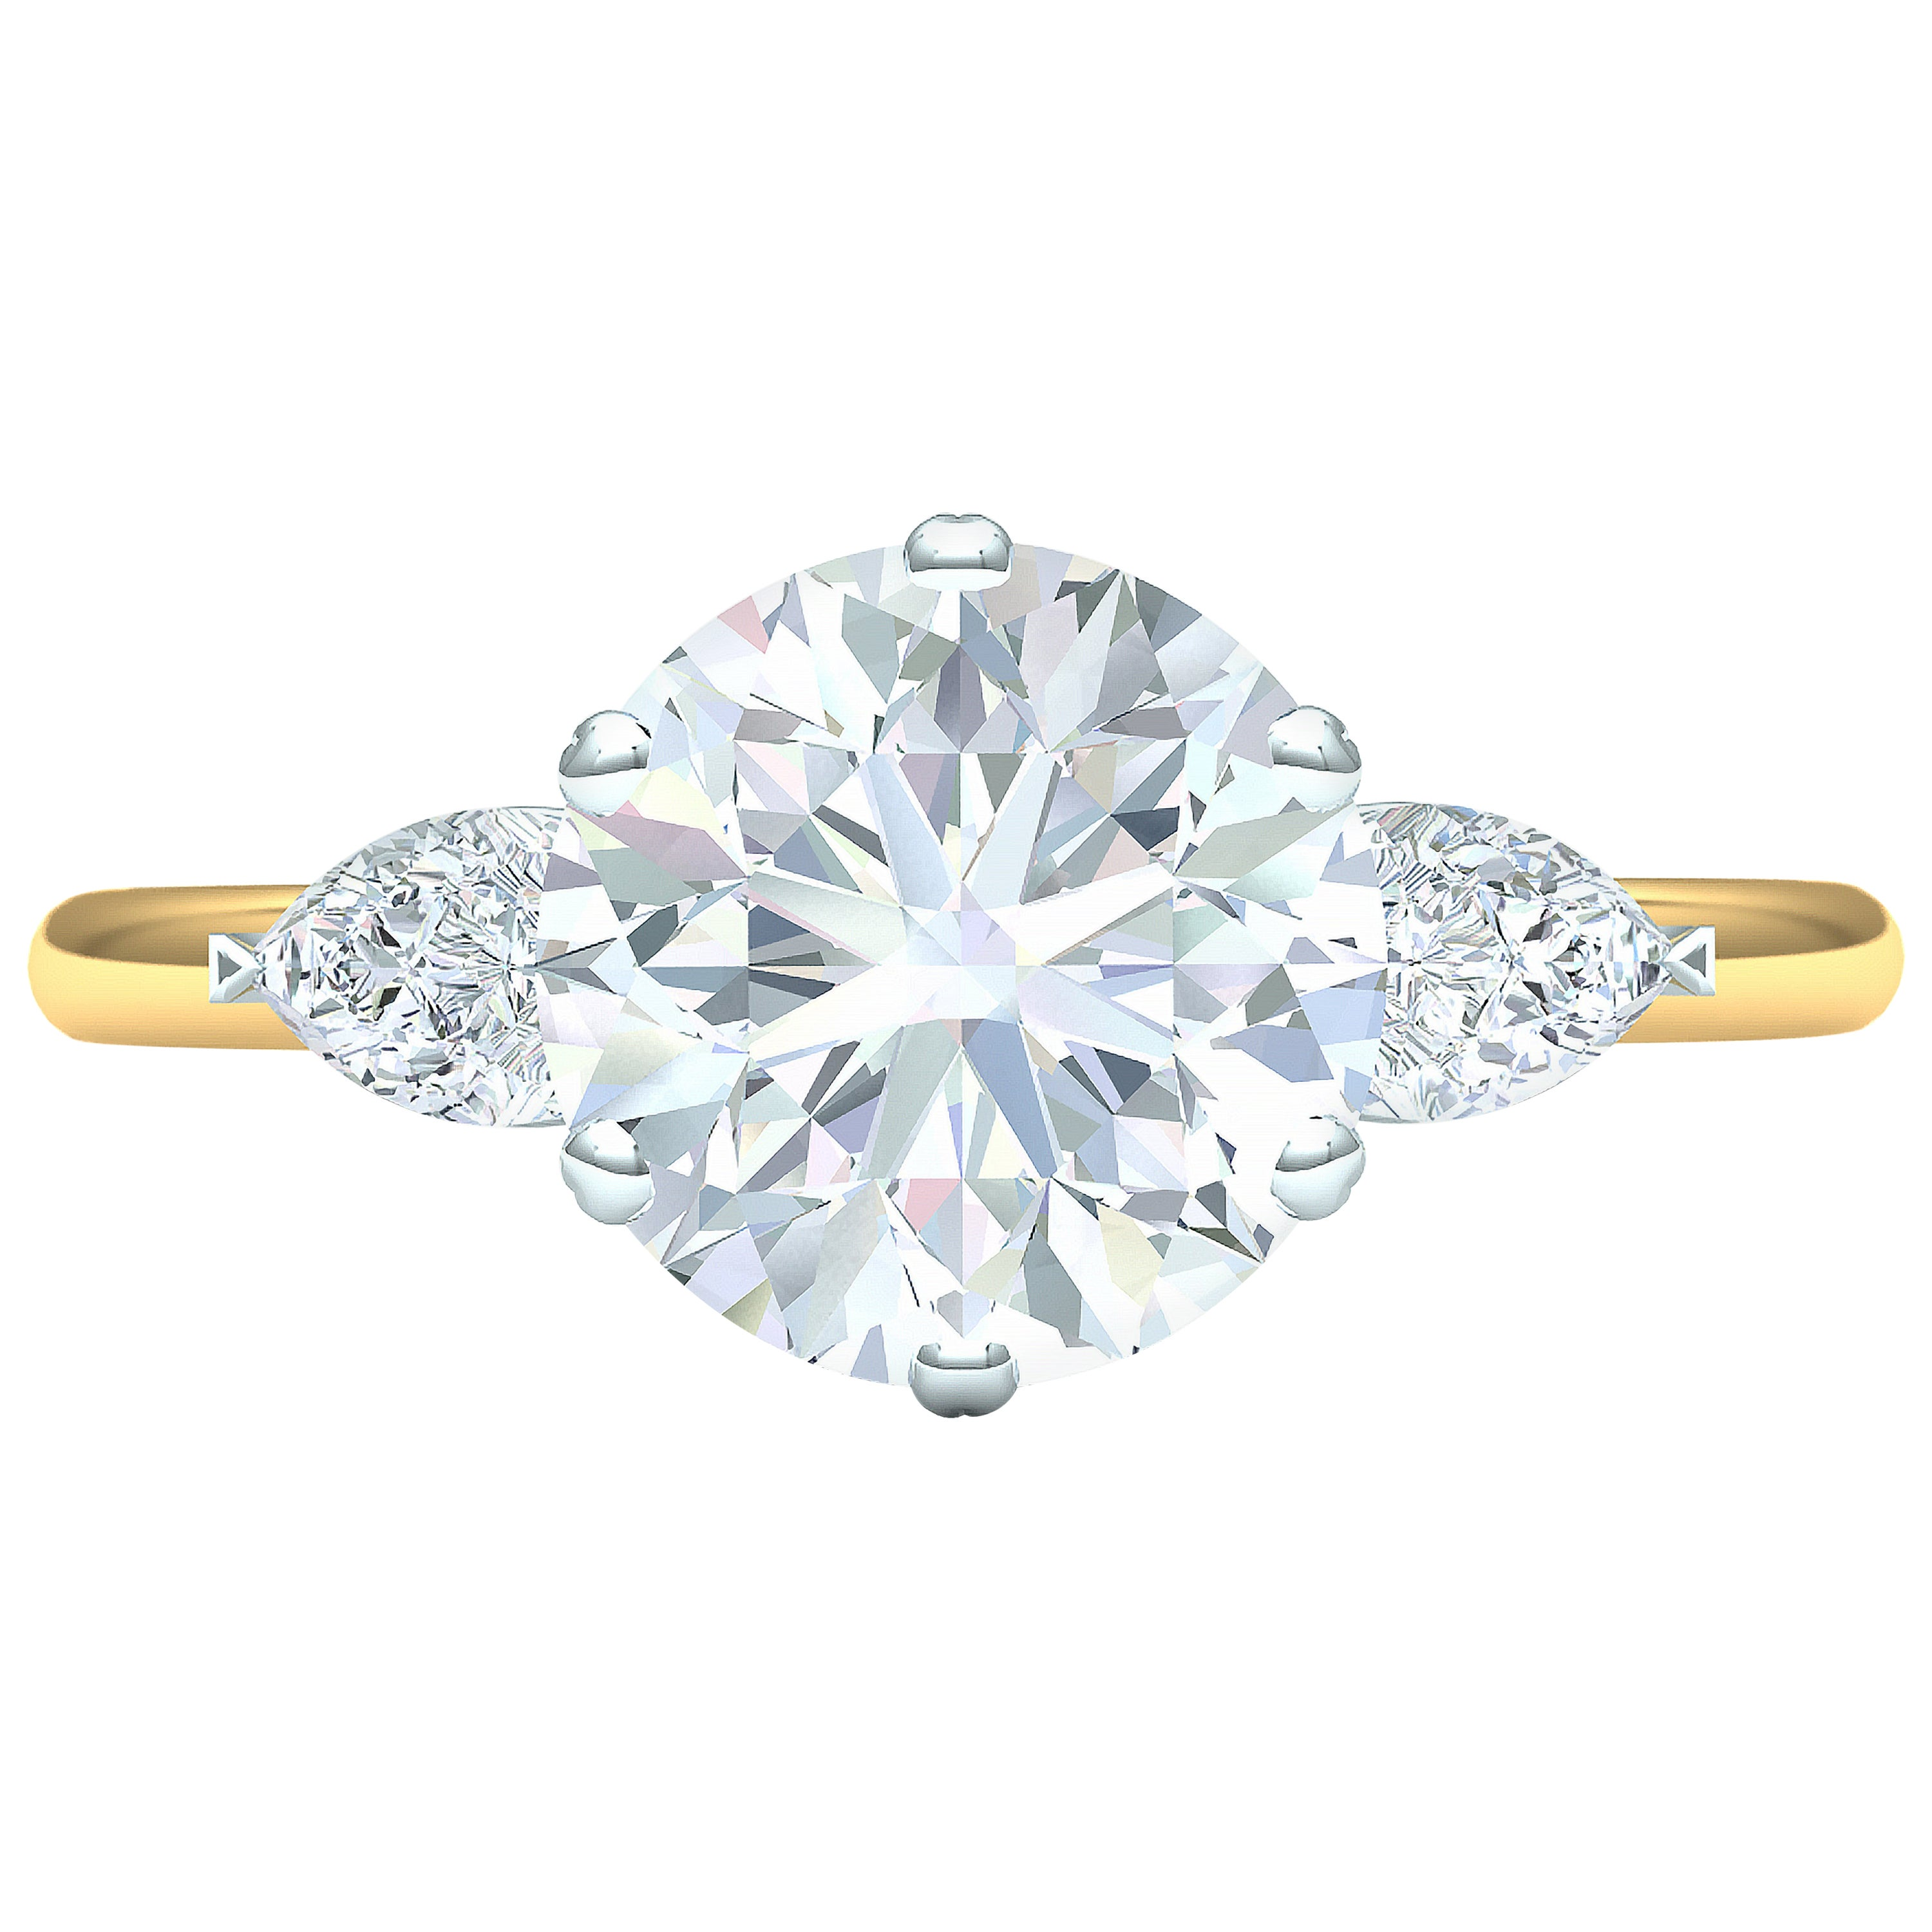 1.6 Carat GIA Certified G VVS2 Engagement Ring